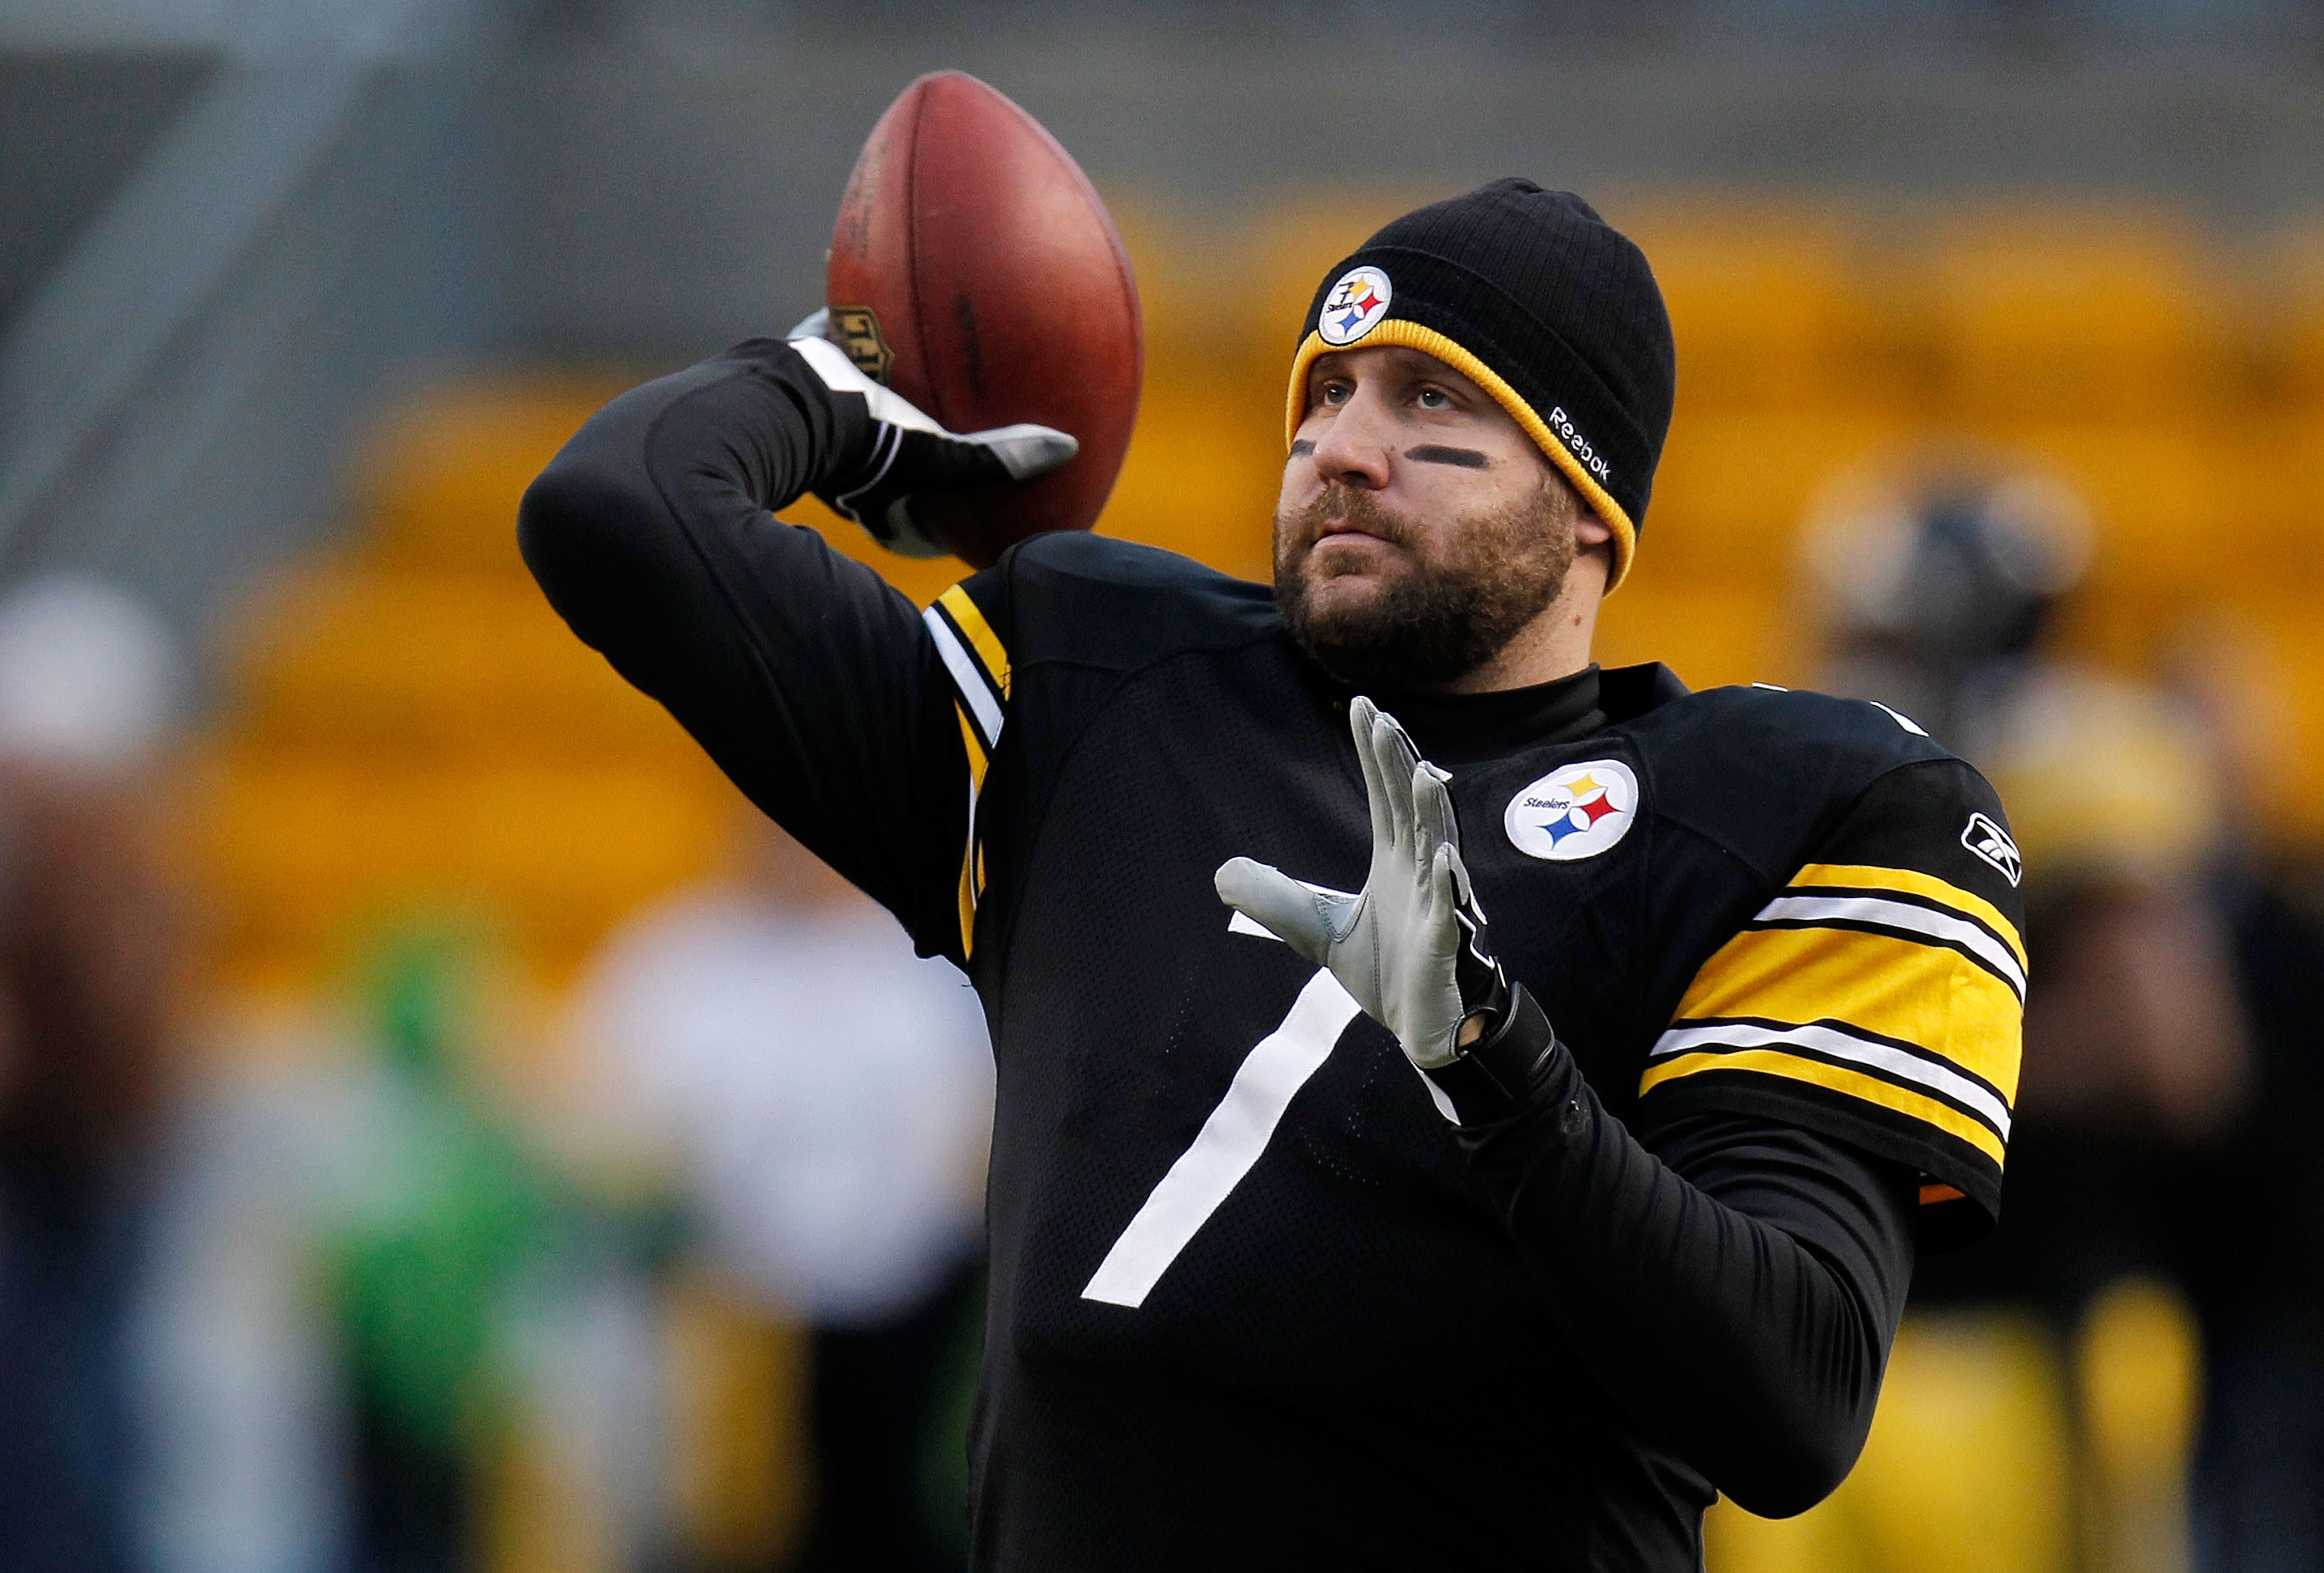 PITTSBURGH, PA - JANUARY 15:  Quarterback Ben Roethlisberger #7 of the Pittsburgh Steelers warms up prior to playing the Baltimore Ravens in the AFC Divisional Playoff Game at Heinz Field on January 15, 2011 in Pittsburgh, Pennsylvania.  (Photo by Gregory